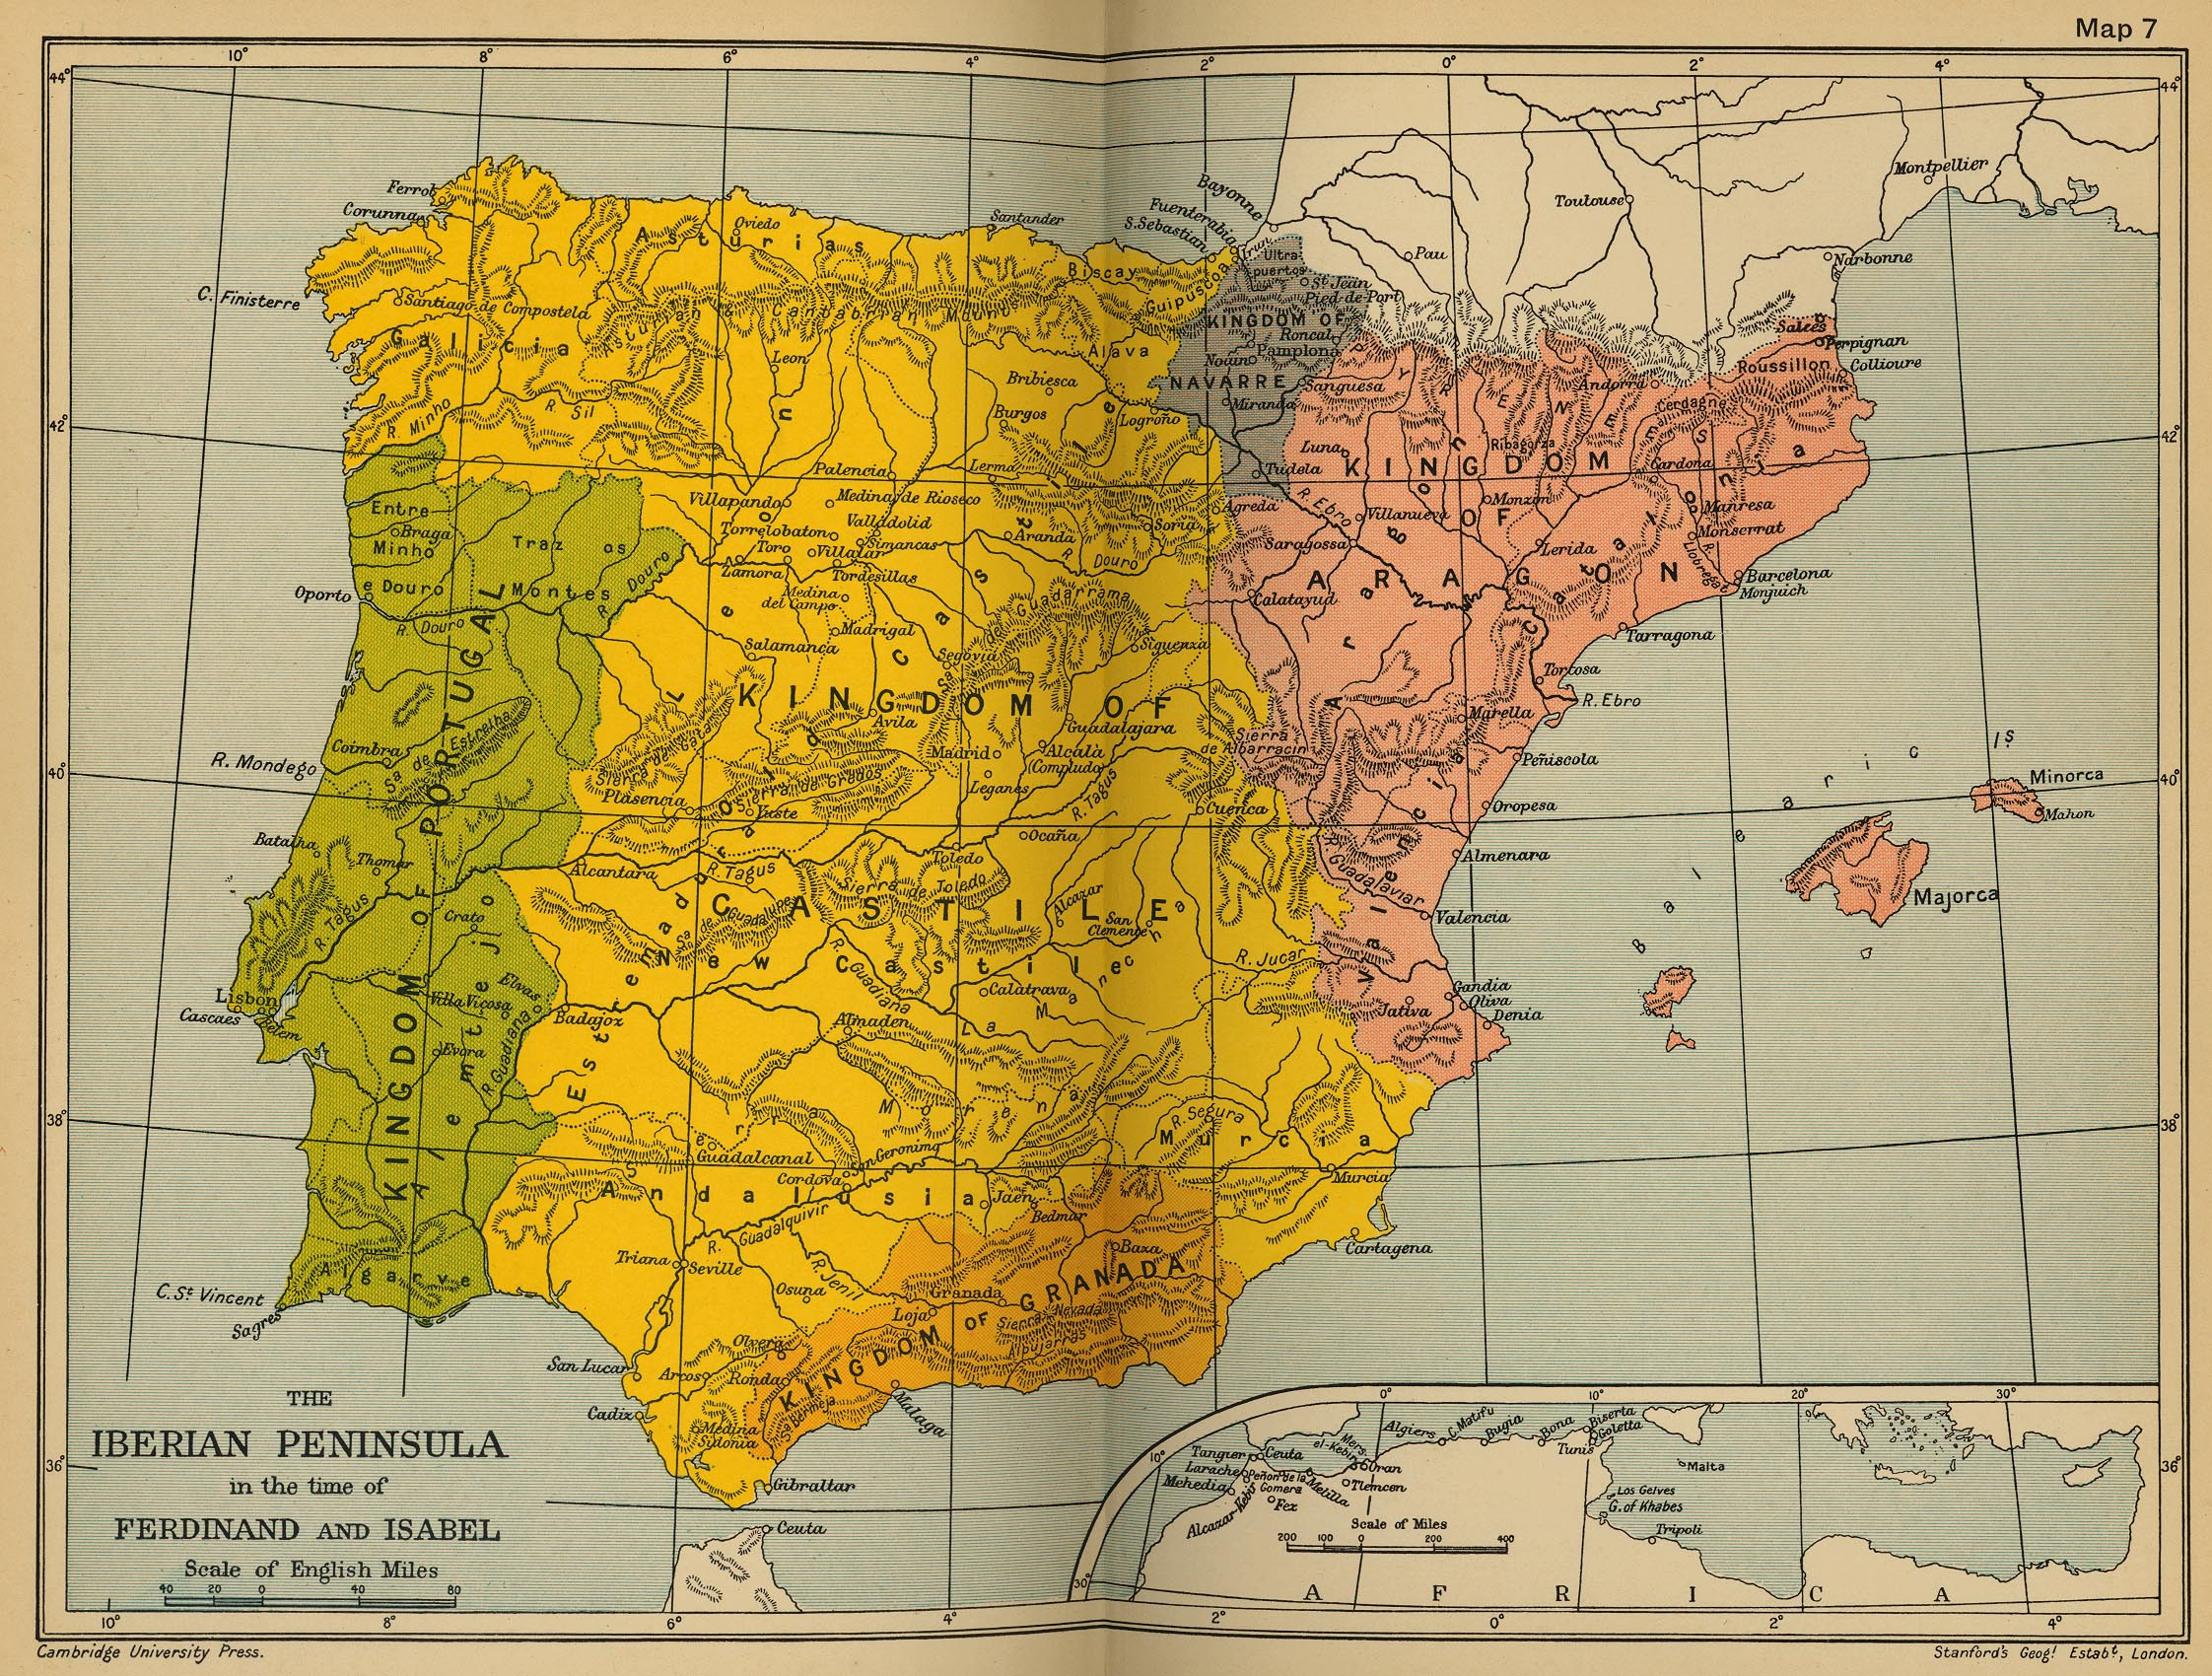 Map of the Iberian Peninsula 1479-1504 Iberia Map on spain map, portugal location on map, ural mountains map, herculaneum map, latin map, spanish language, mediterranean map, austria map, scandinavian peninsula, strait of gibraltar, spanish inquisition, poland map, iberian peninsula map, black sea, rock of gibraltar, italian peninsula, roman empire map, european map, arabian peninsula, the british isles map,